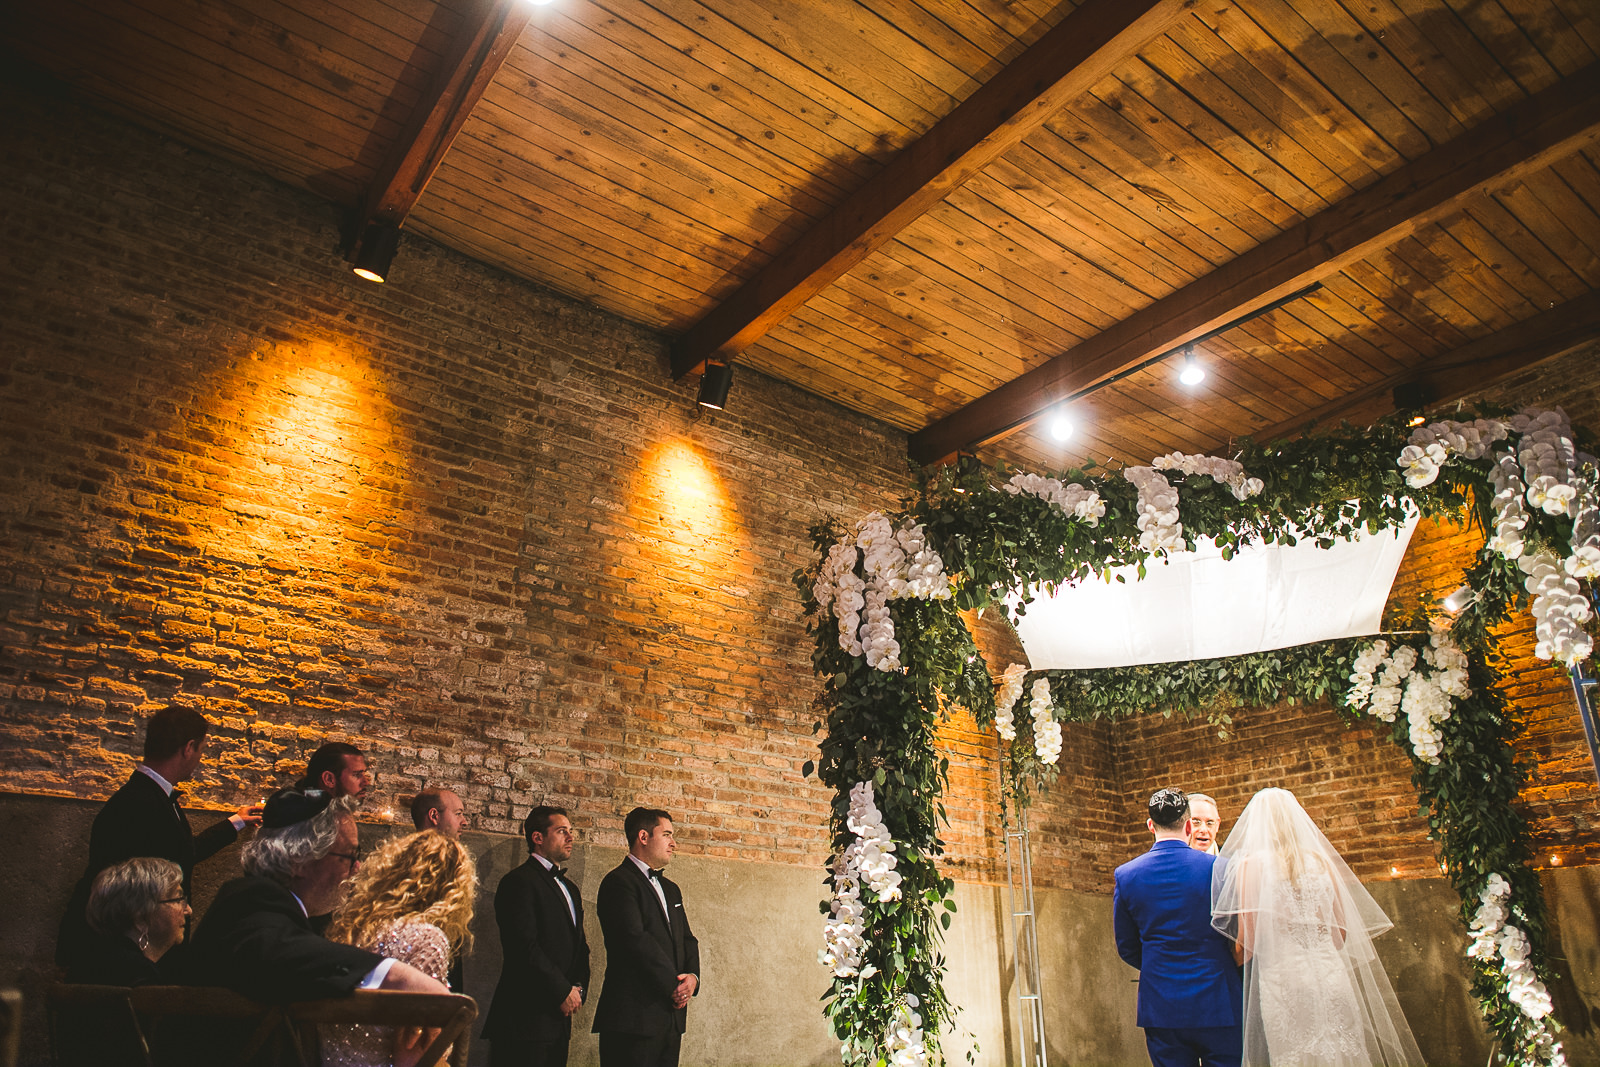 43 jewish wedding at gallery 1028 - Chicago Wedding Photography at Gallery 1028 // Courtnie + David